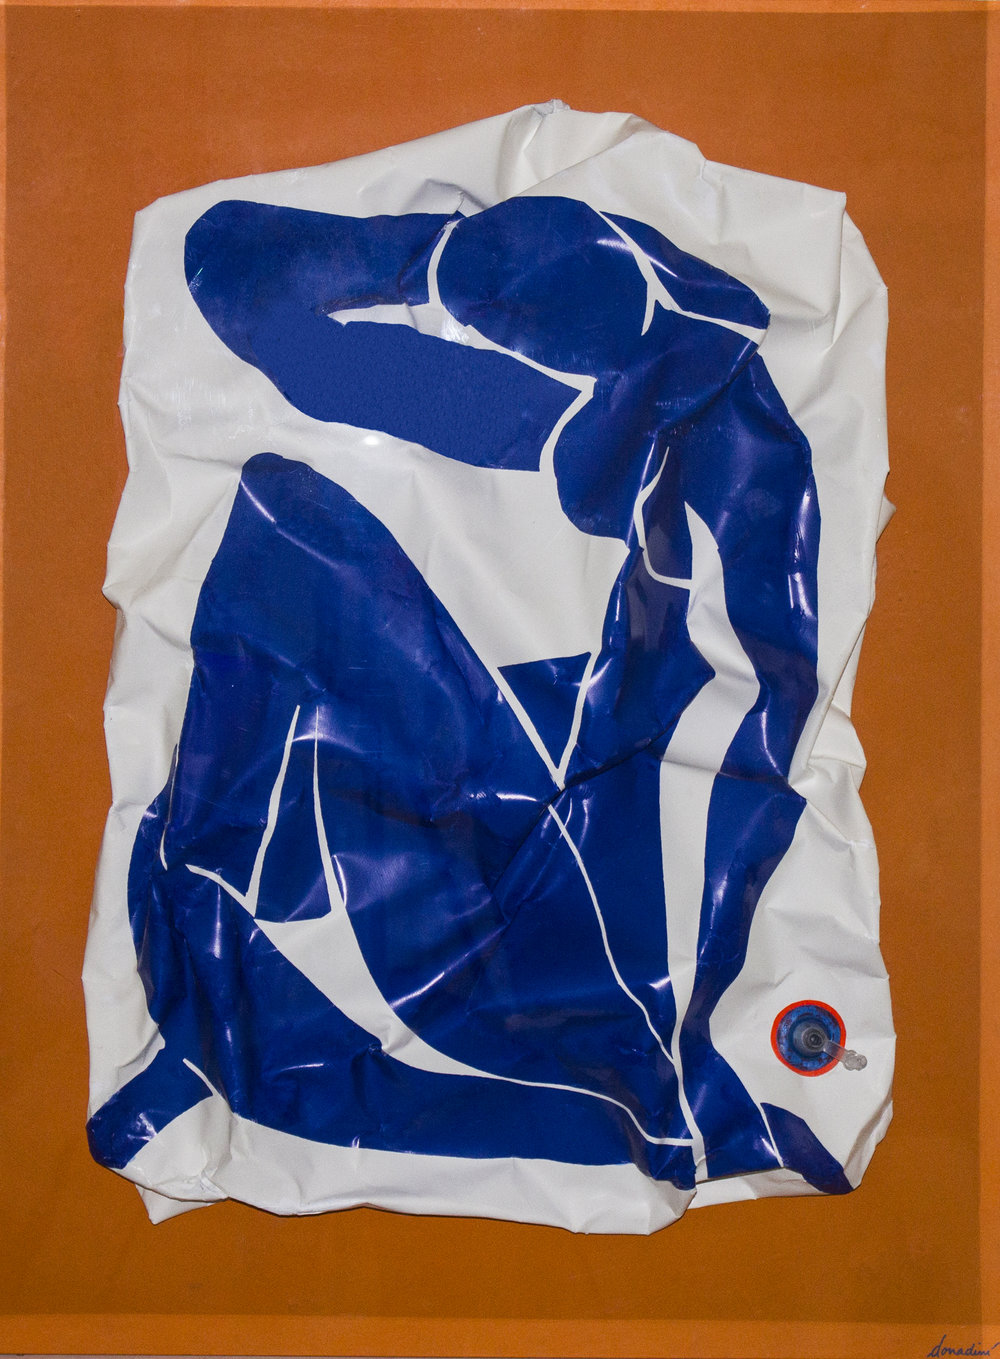 Matisse Bleu (Gonflable) - 2013Mixed Media91 x 69 cm